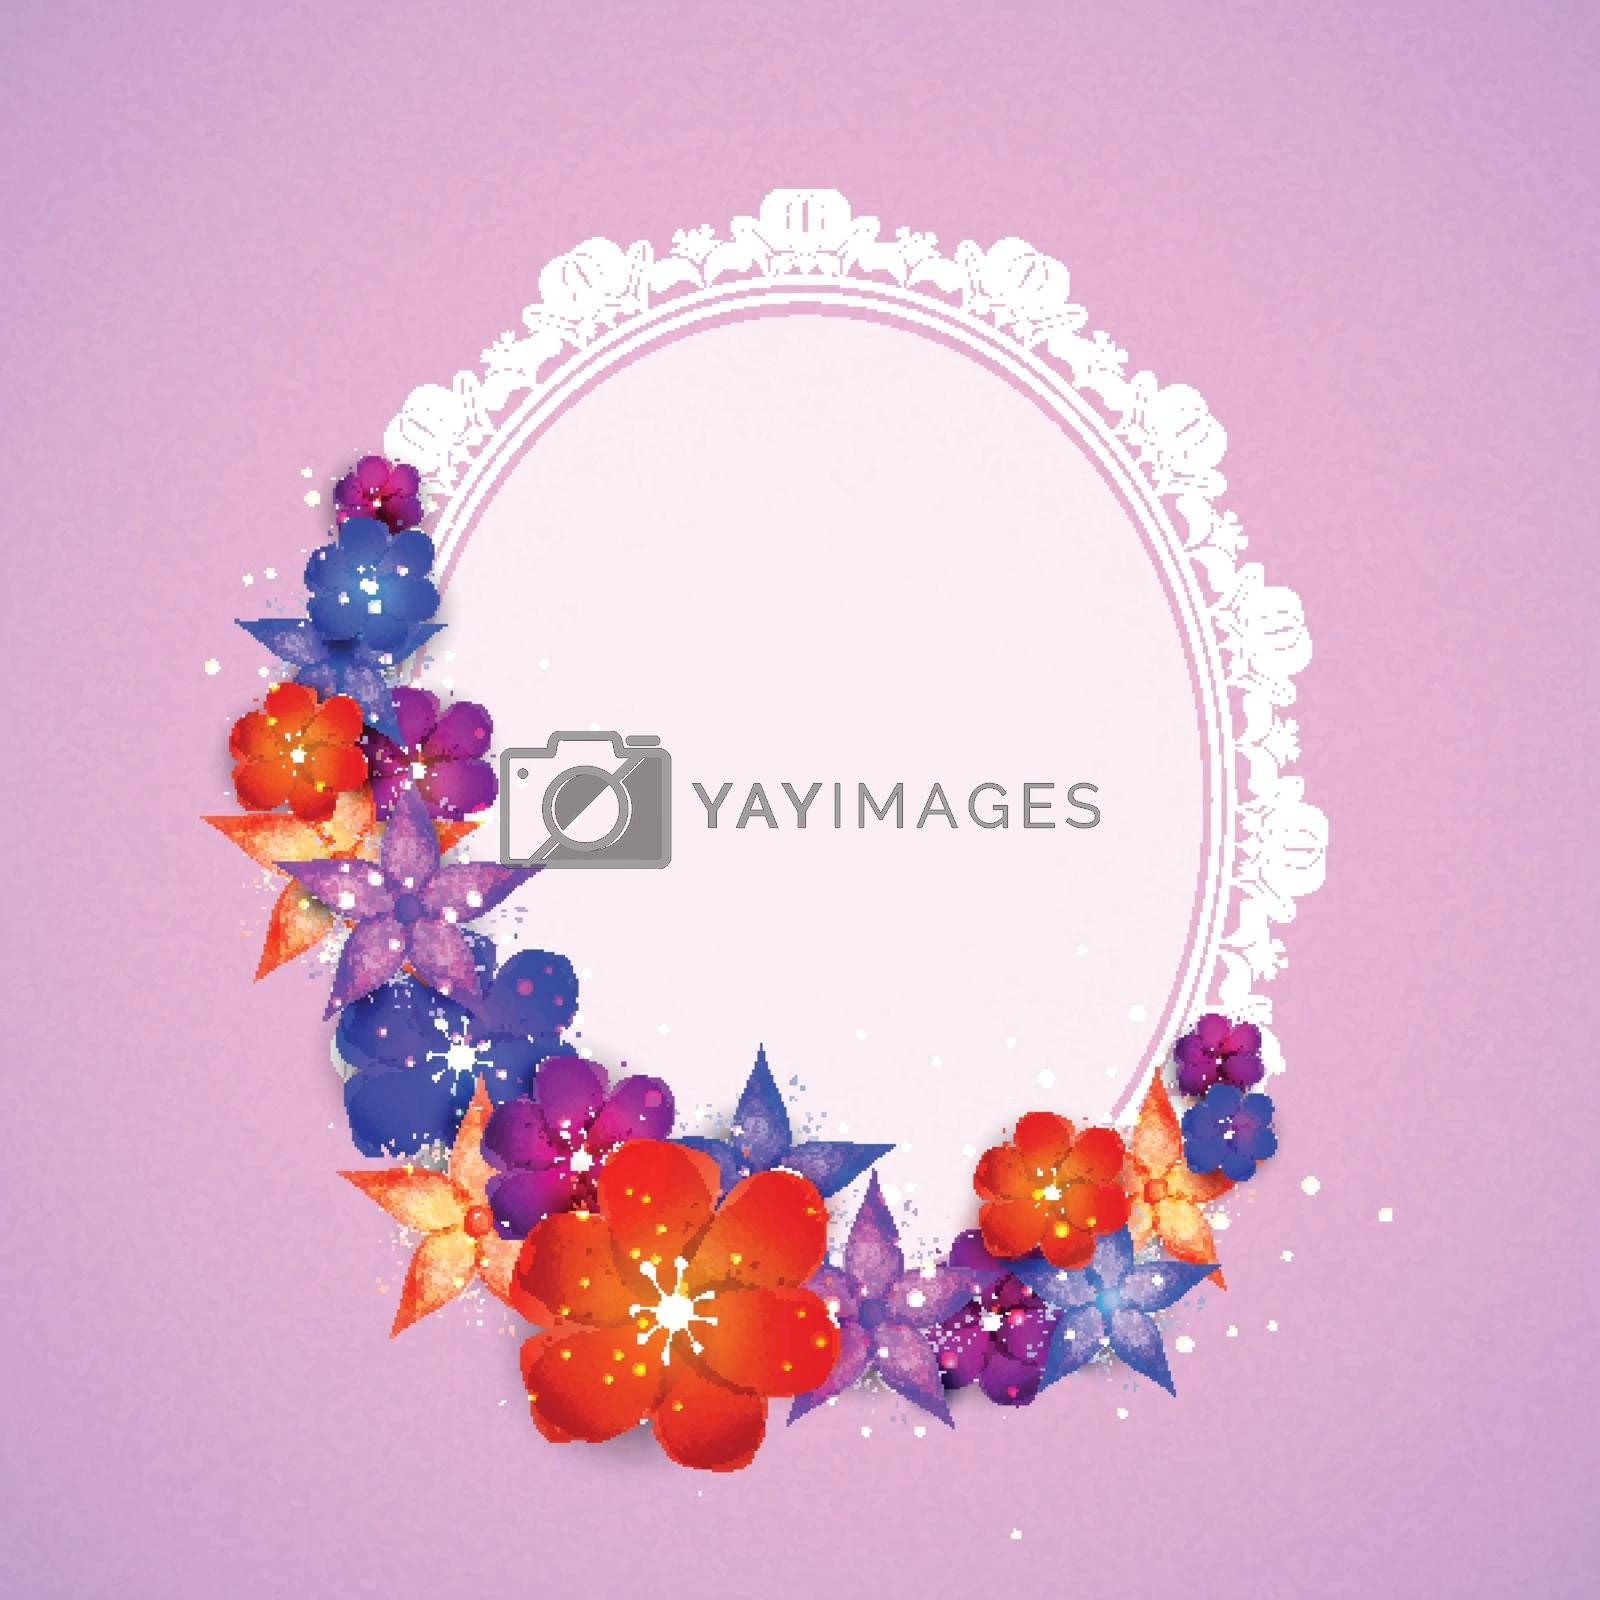 Colorful flowers decorated frame in oval shape.